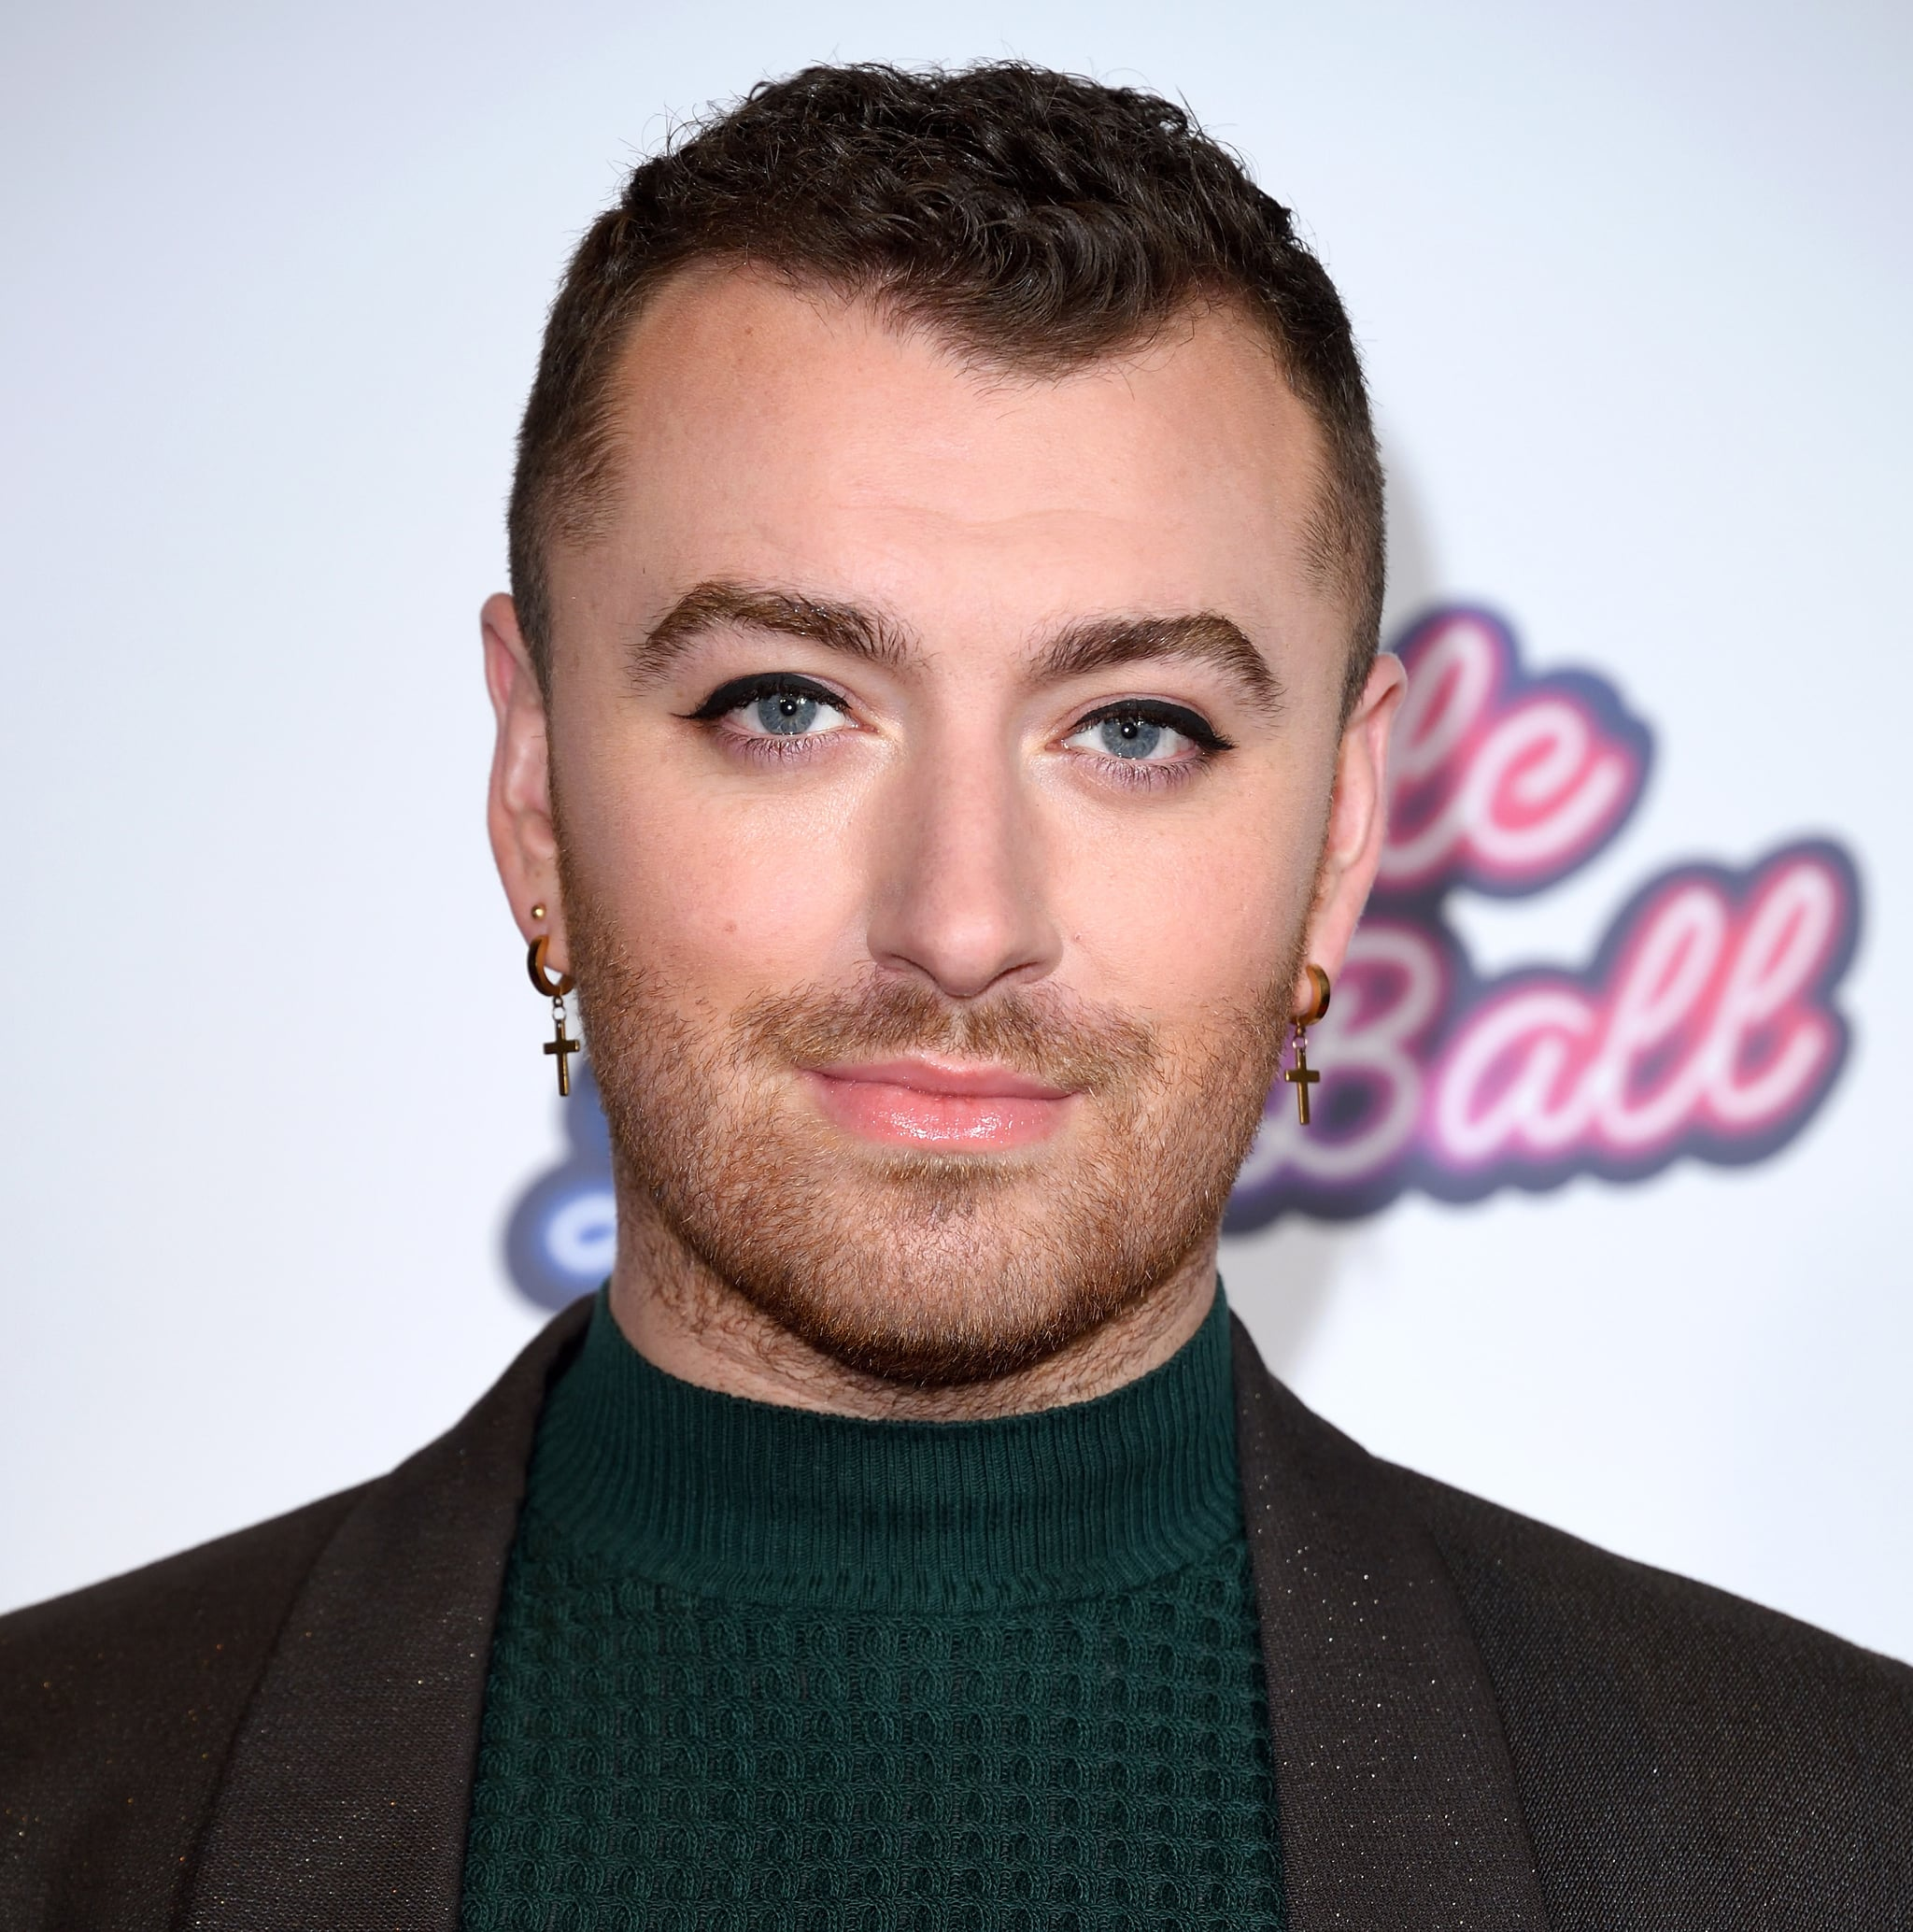 LONDON, ENGLAND - DECEMBER 08: Sam Smith attends day two of Capital's Jingle Bell Ball 2019 at The O2 Arena on December 08, 2019 in London, England. (Photo by Karwai Tang/WireImage)